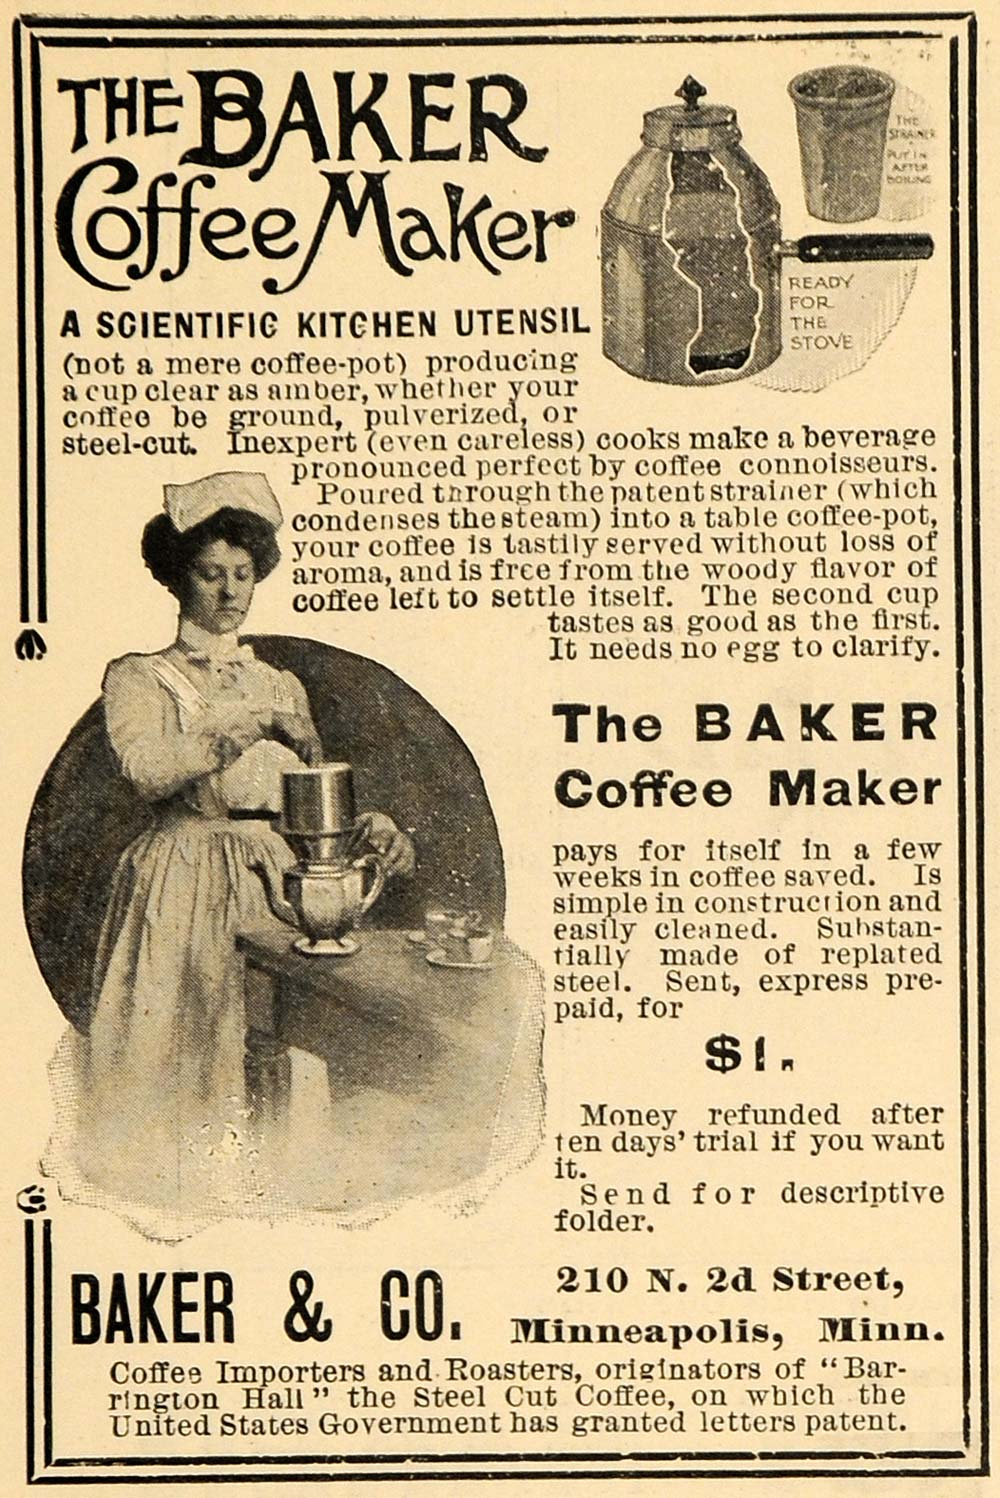 1903 Ad Baker & Co. Coffee Maker Kitchen Utensil Maid - ORIGINAL TIN5